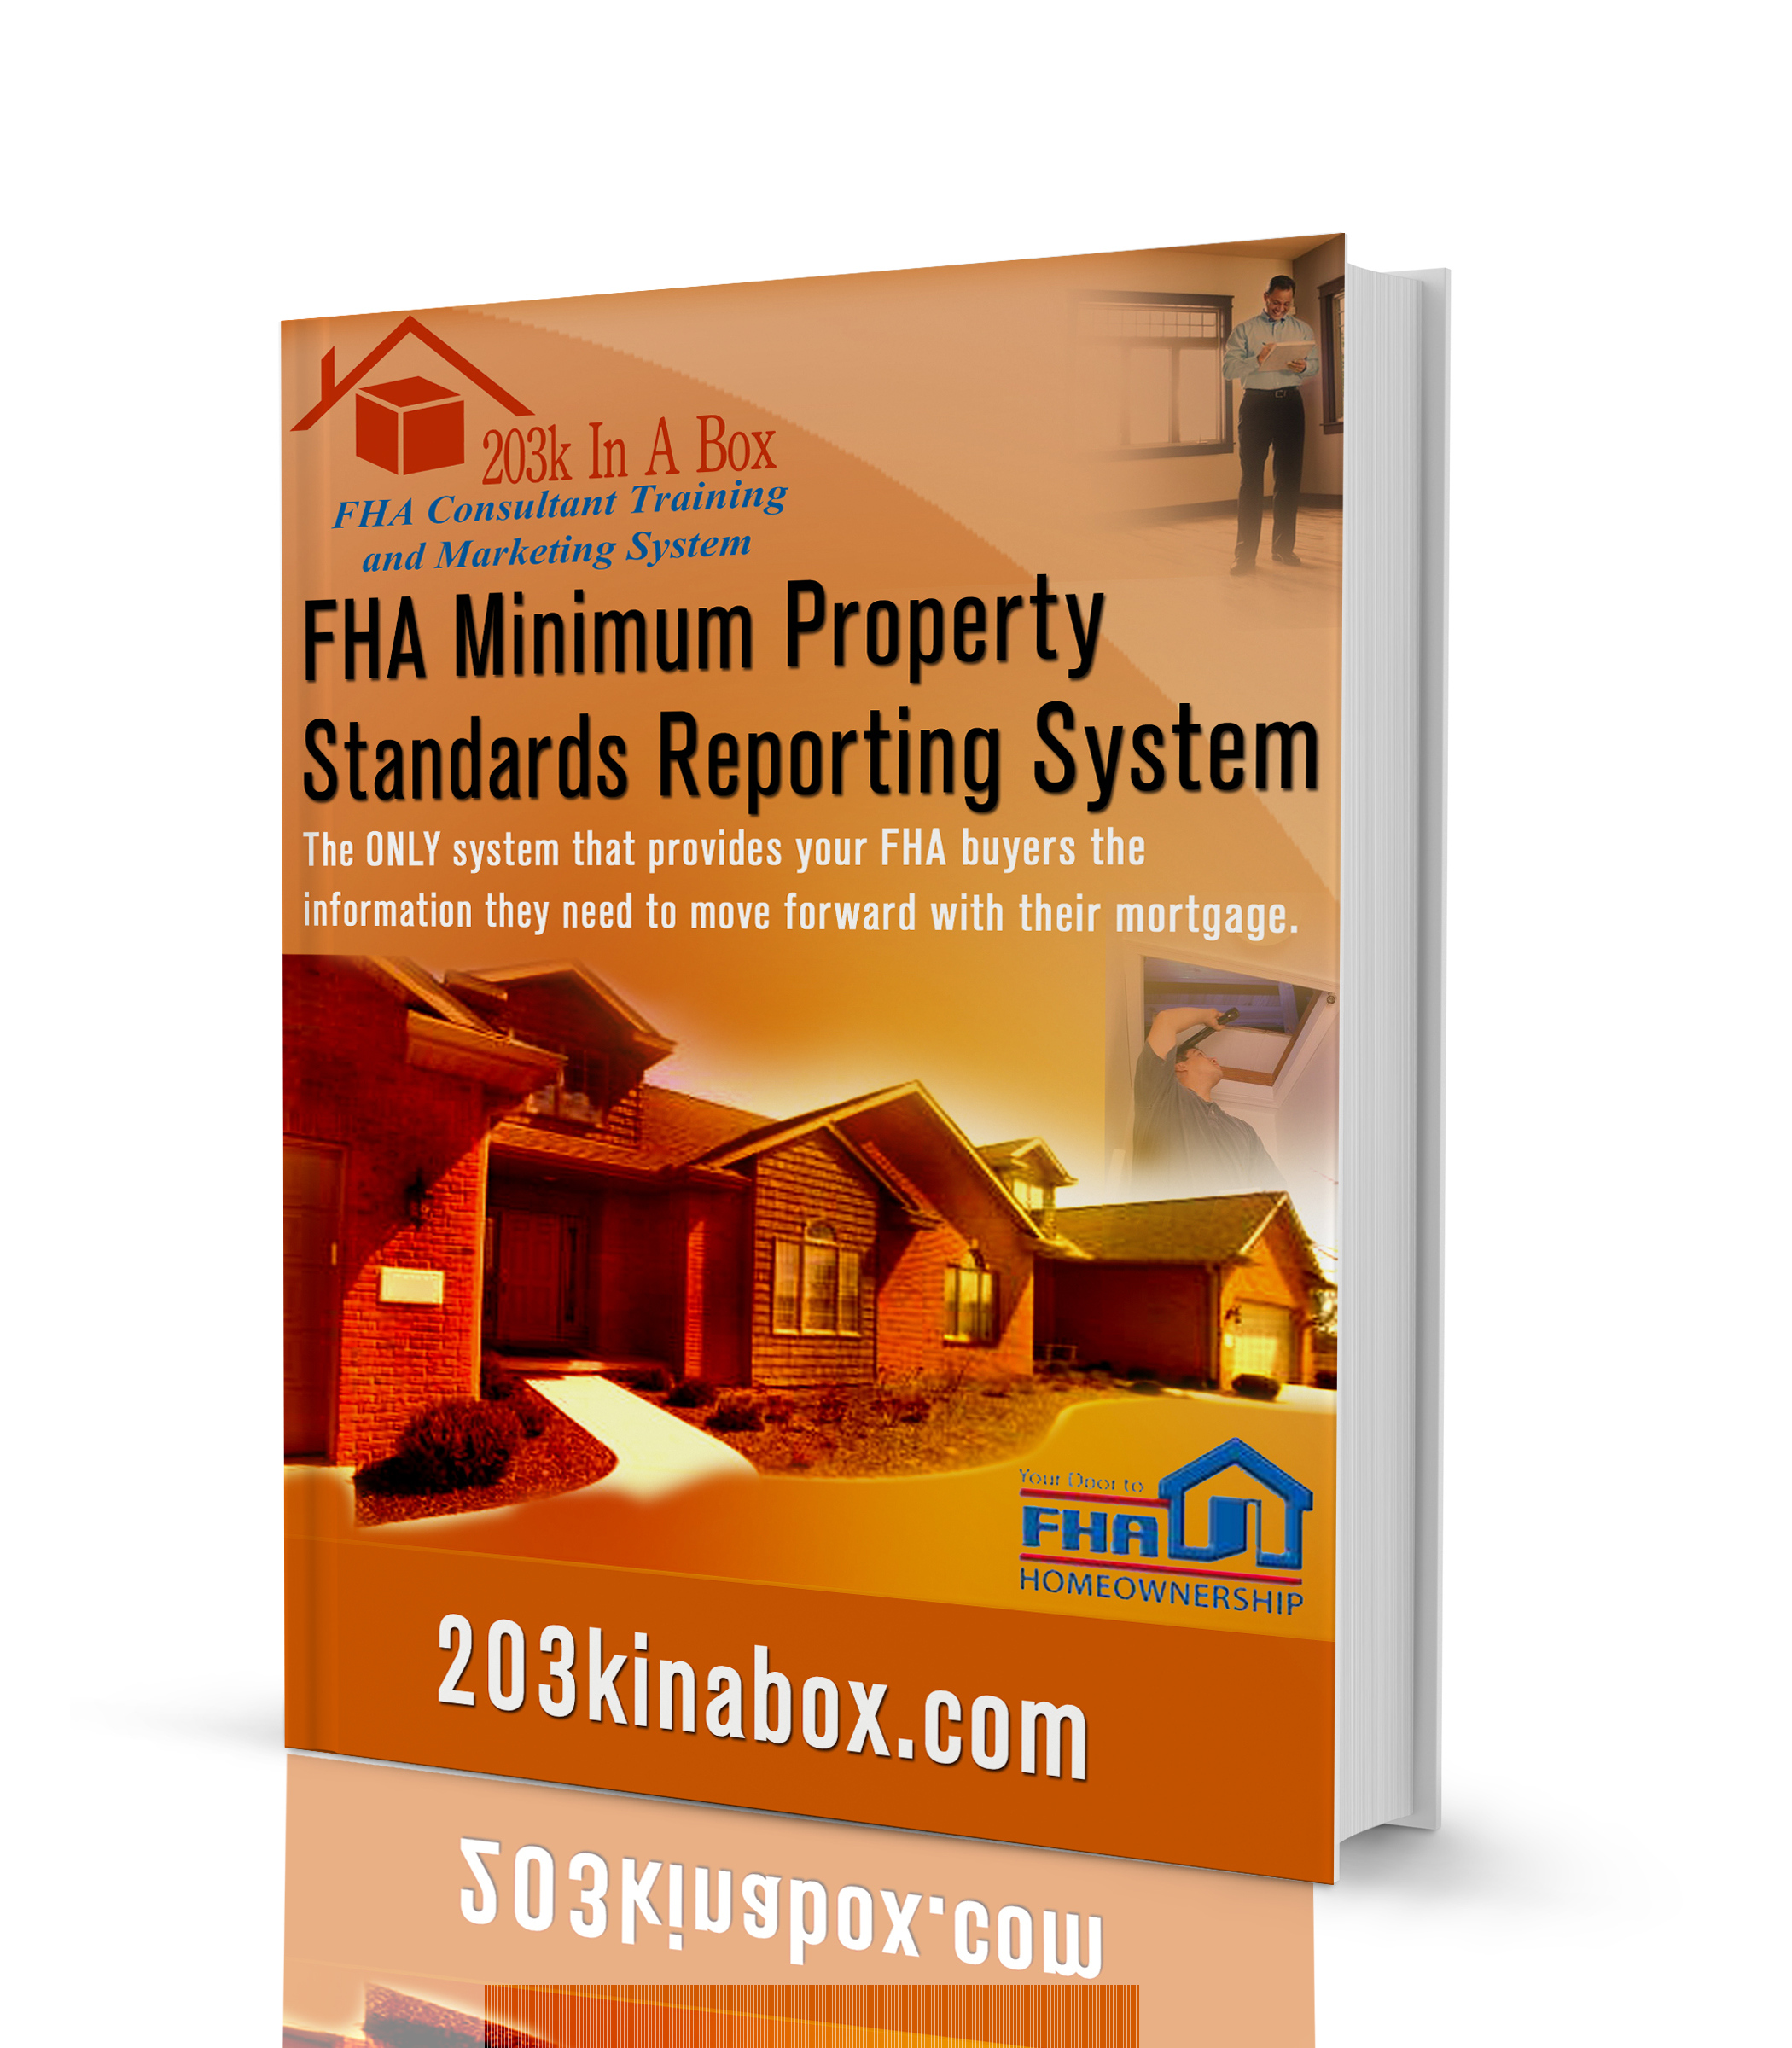 Minimum property standards 203k training and certification system the fha minimum property standards reporting system is a system to provide your fha buyers the information they need to move forward with their mortgage xflitez Gallery